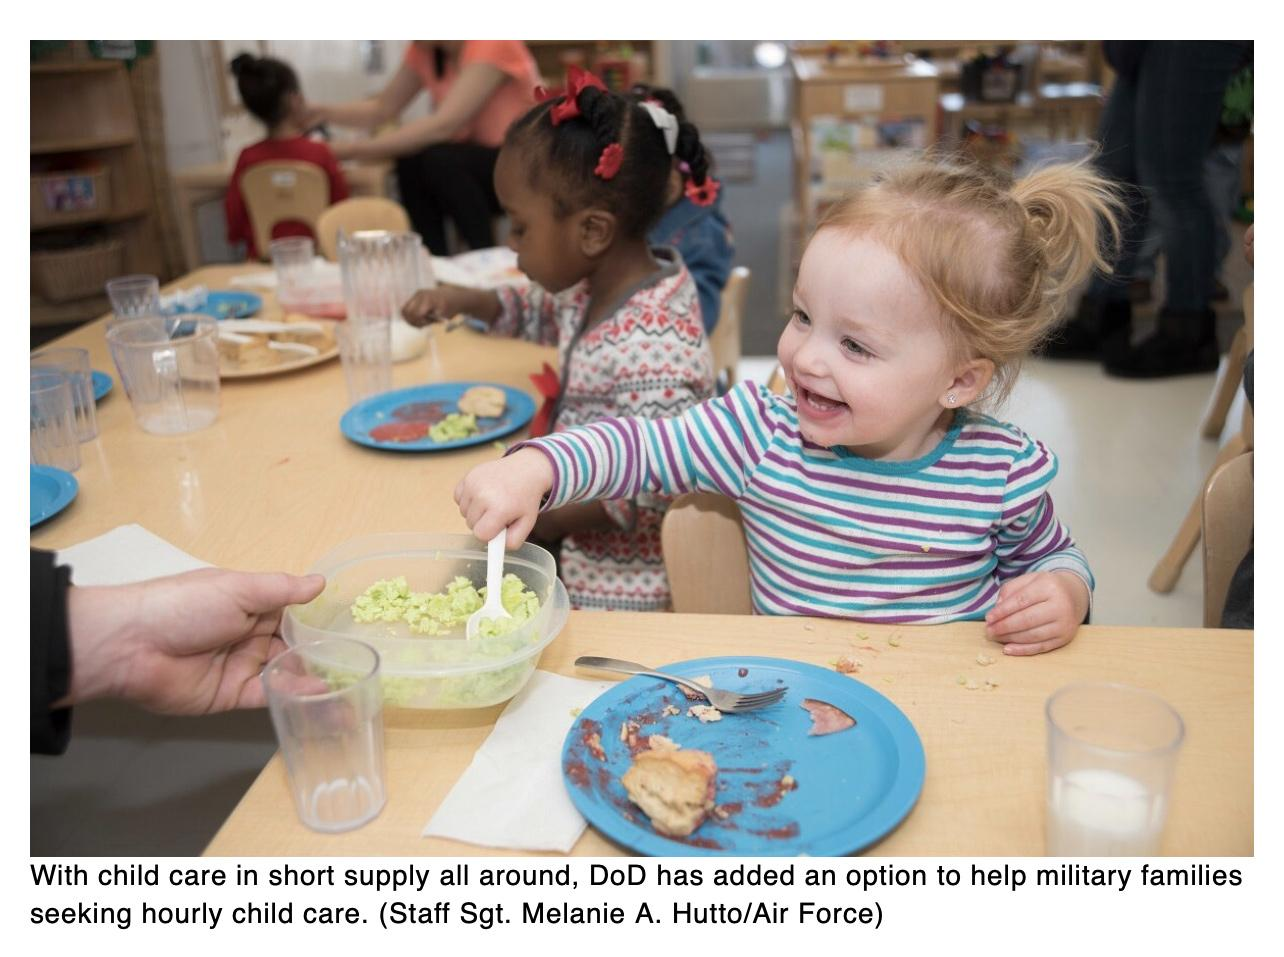 New DoD option helps military parents find hourly child care